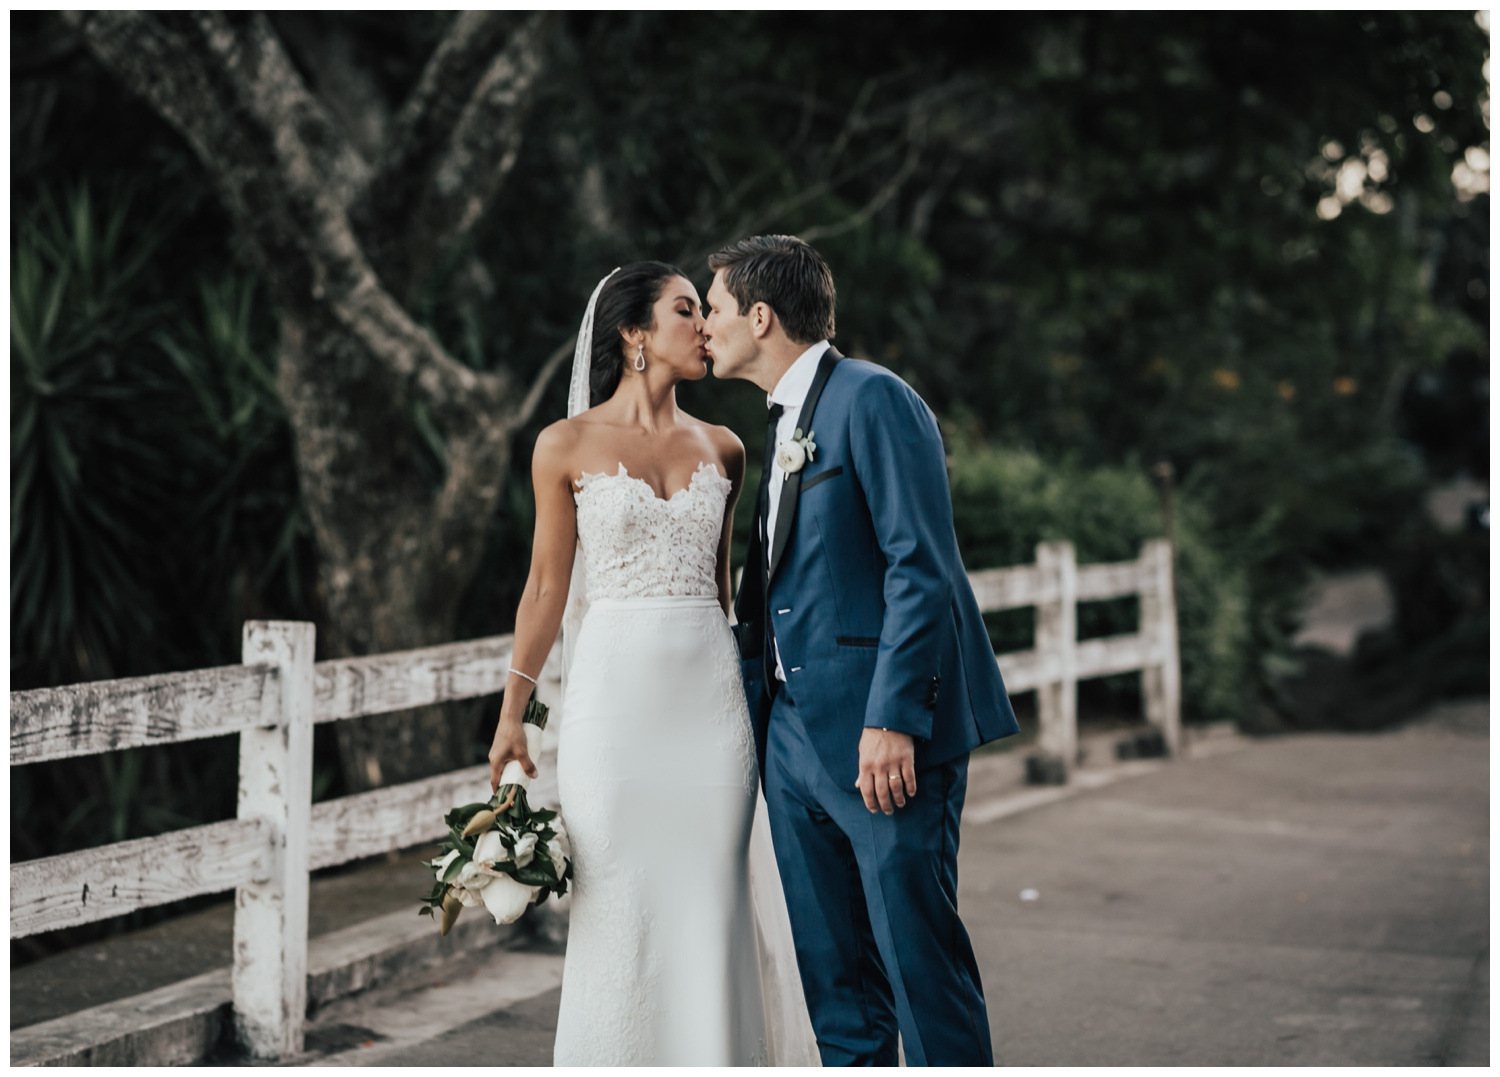 adriana_rivera_miranda_weddings_el_salvador_36.jpg